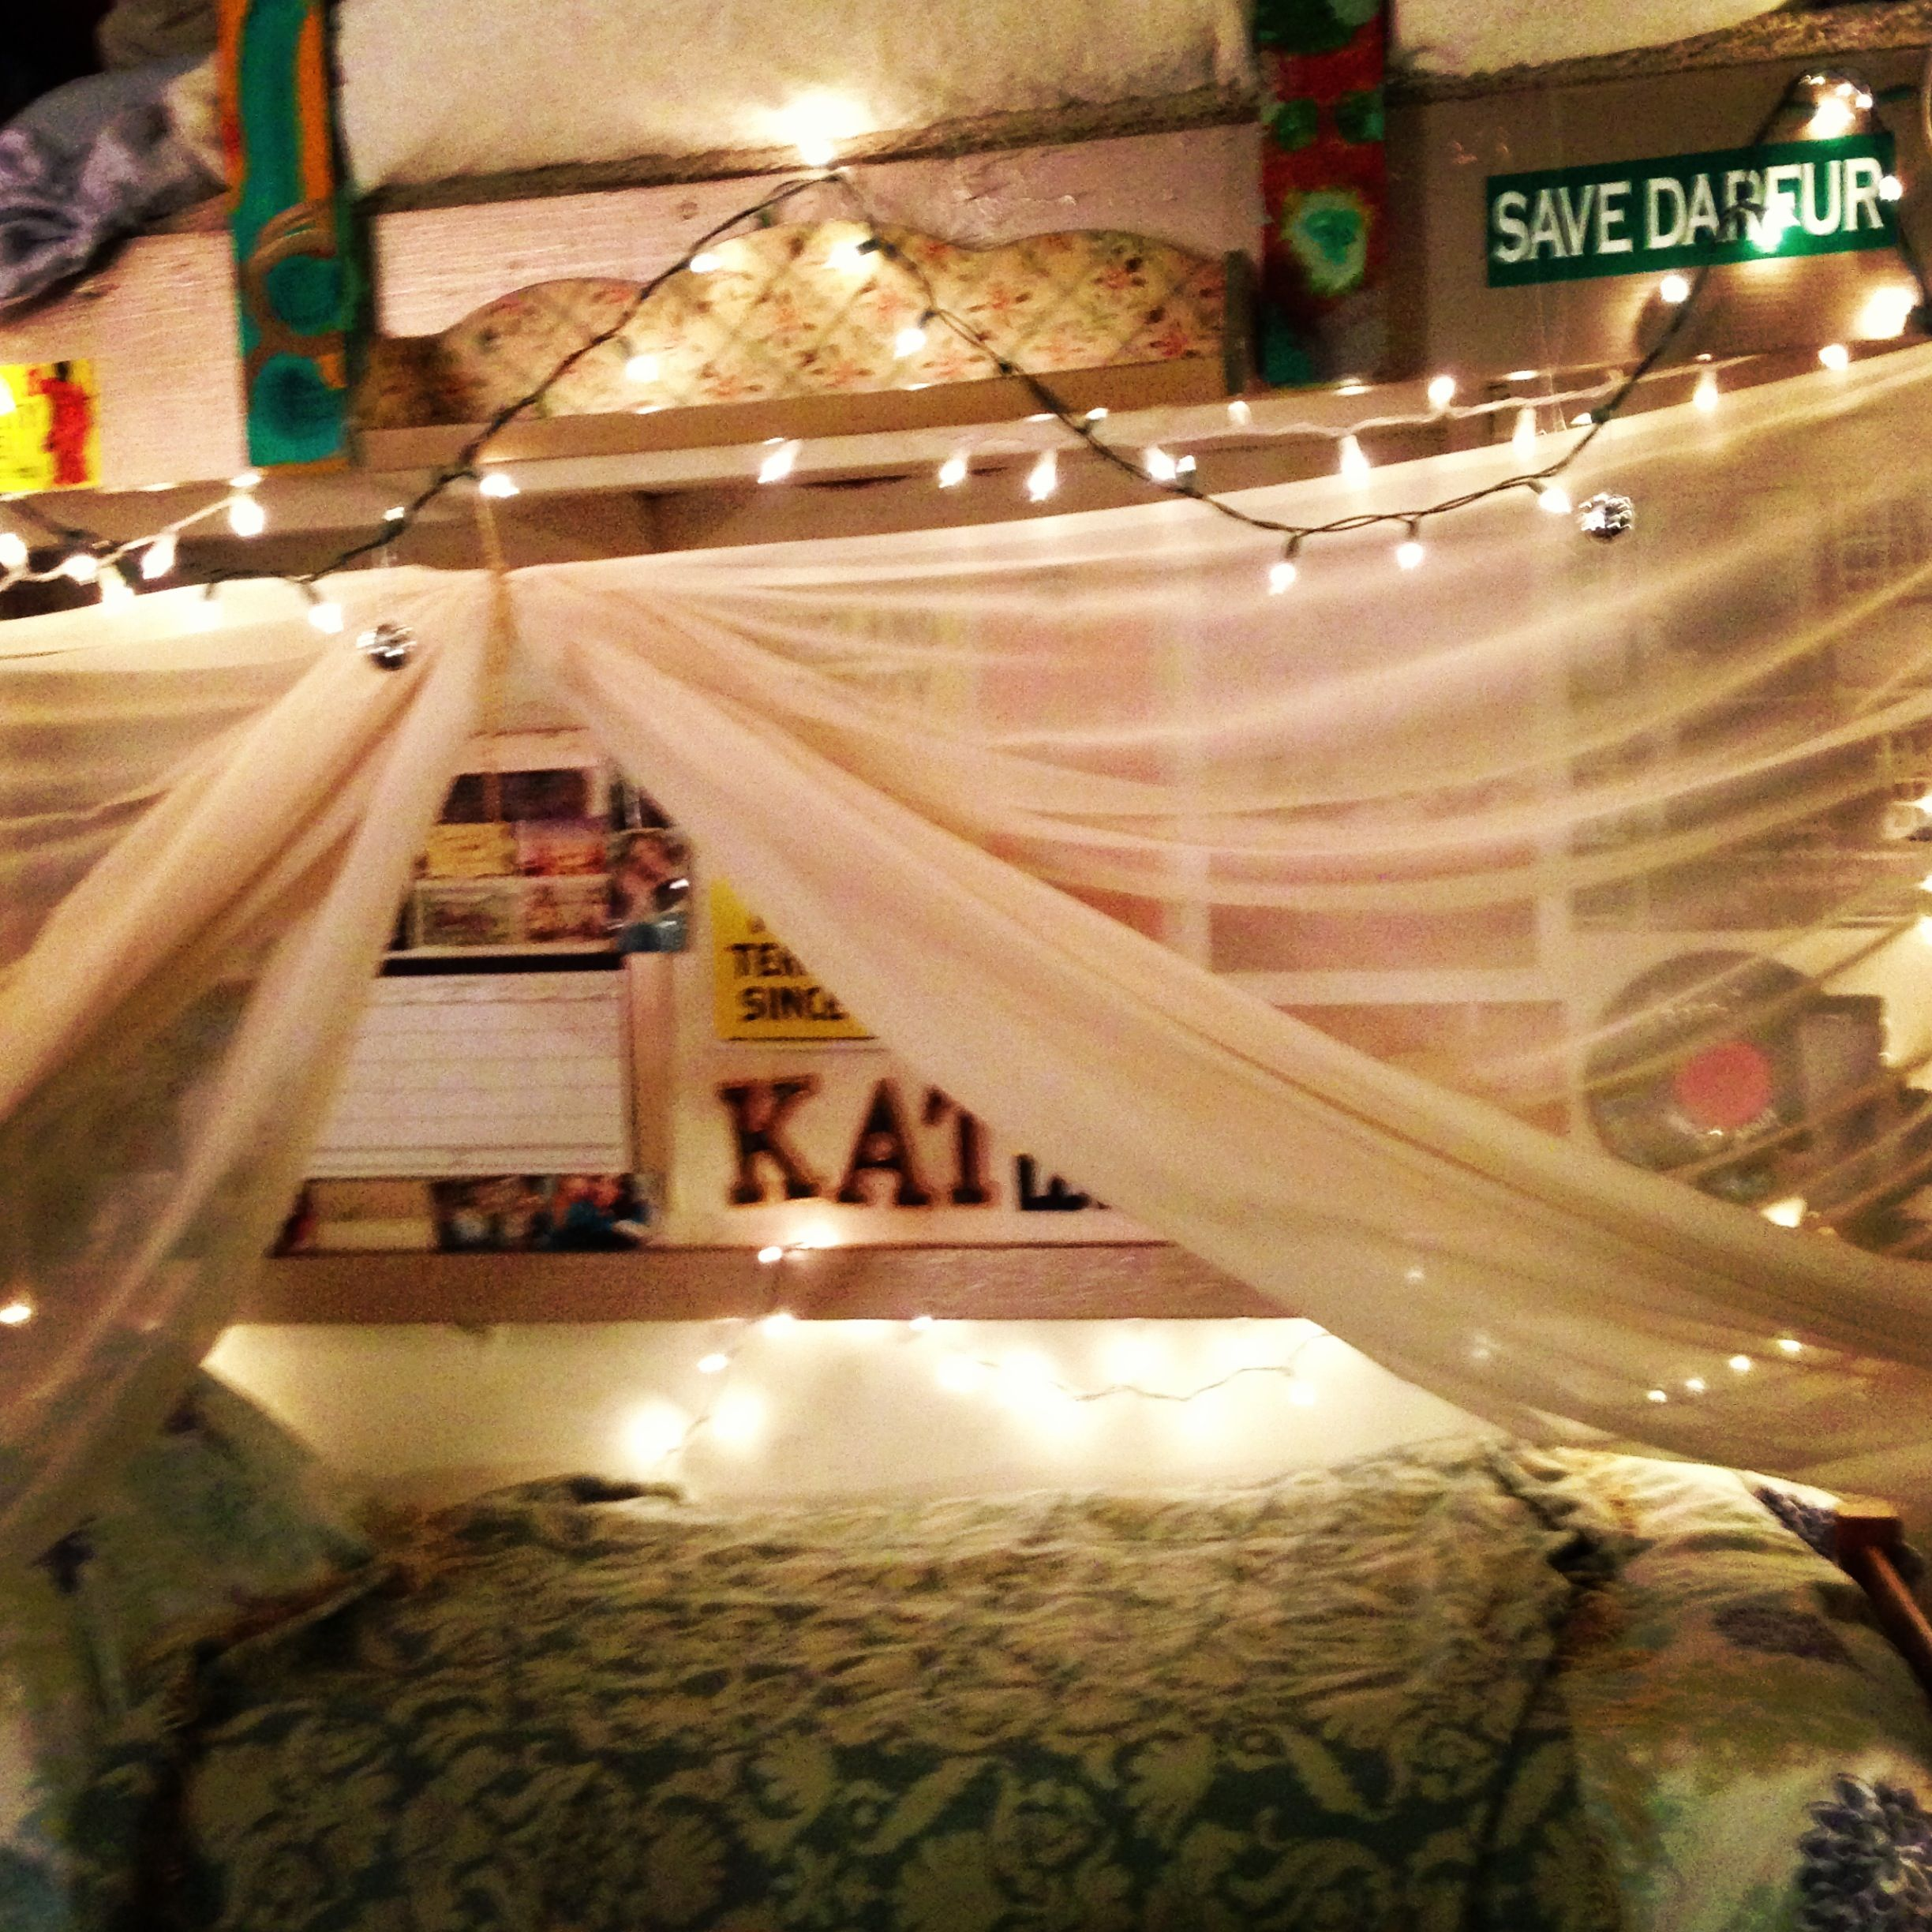 Dorm Room Diy Canopy I Like The Lofted Bed Lights Pictures And Canopy For The Underneath One Nice Dorm Sweet Dorm Dorm Room Diy Dorm Diy